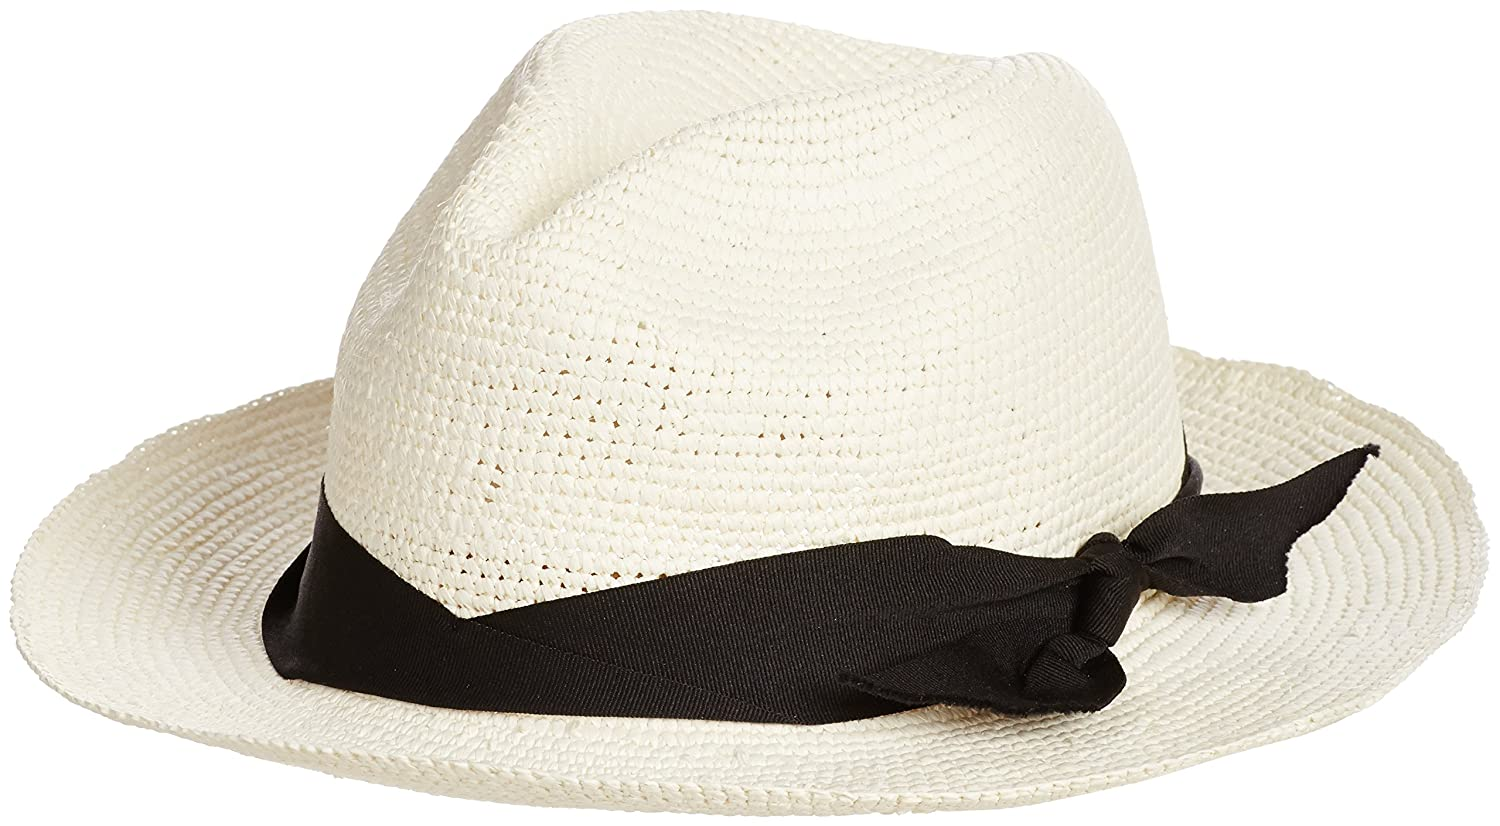 Amazon.co.jp: (センシ スタジオ)SENSI STUDIO(センシ スタジオ) Panama Hat crochet semi bow band 187 white x black Medium: 服&ファッション小物通販